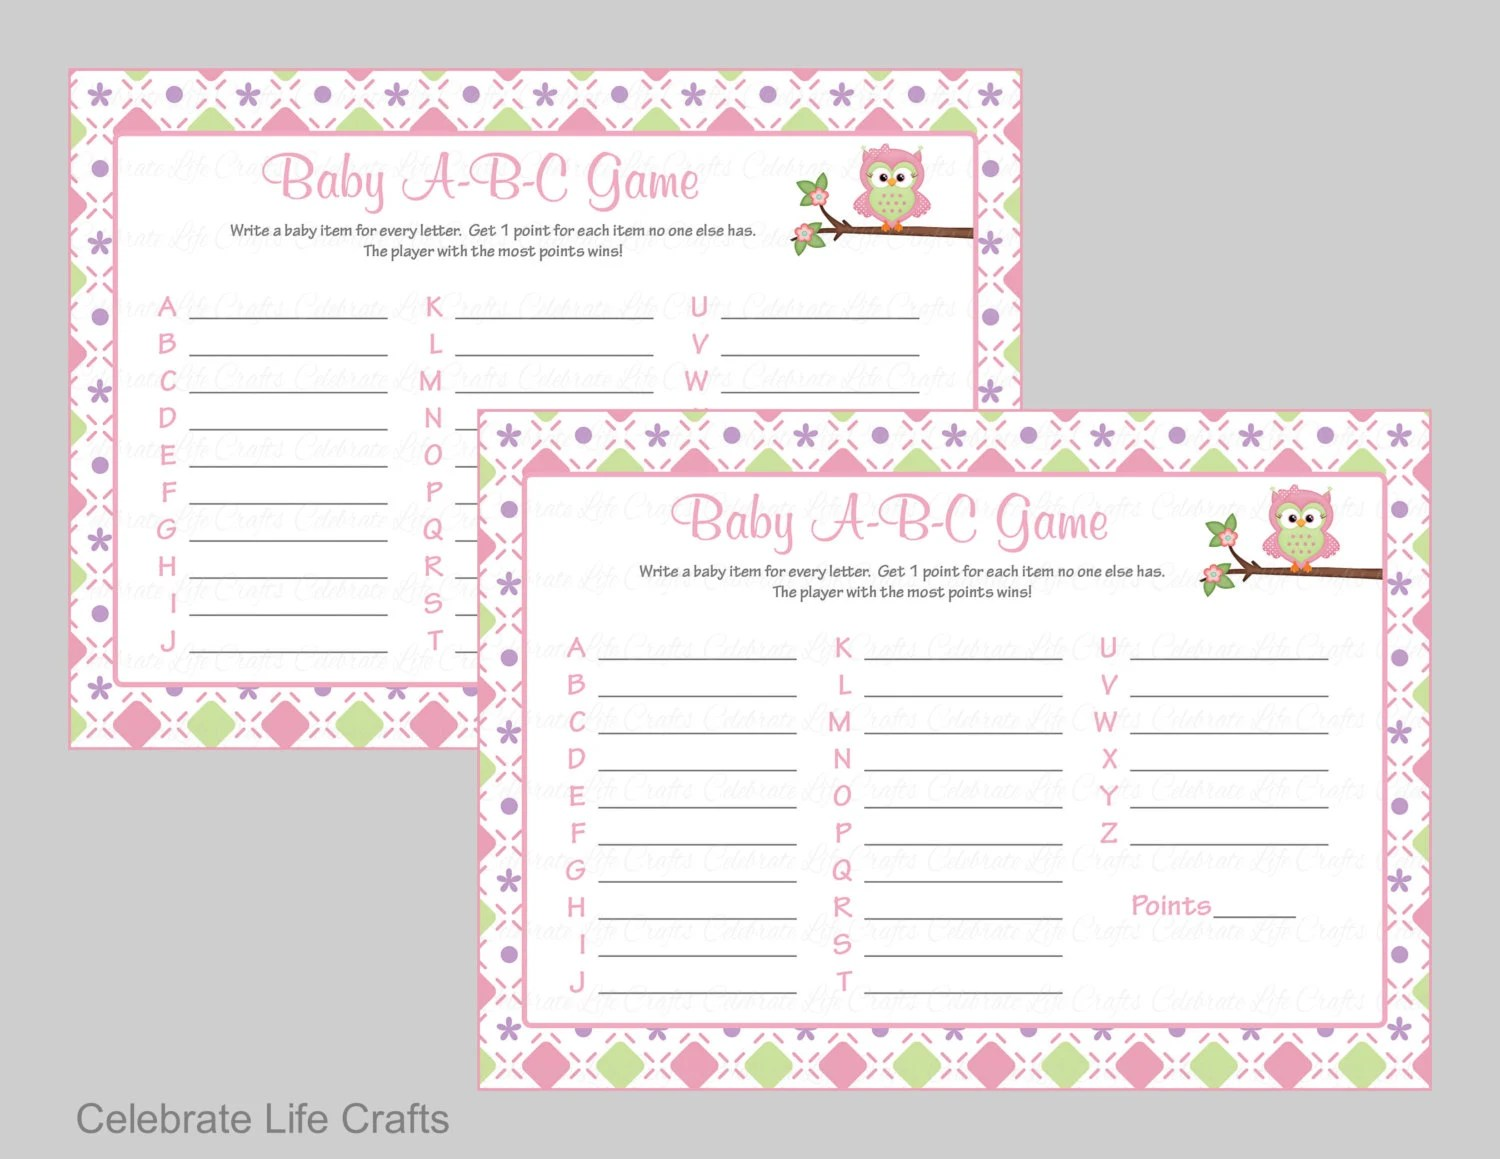 Baby Shower Baby Abc Game Printable Baby Shower Games